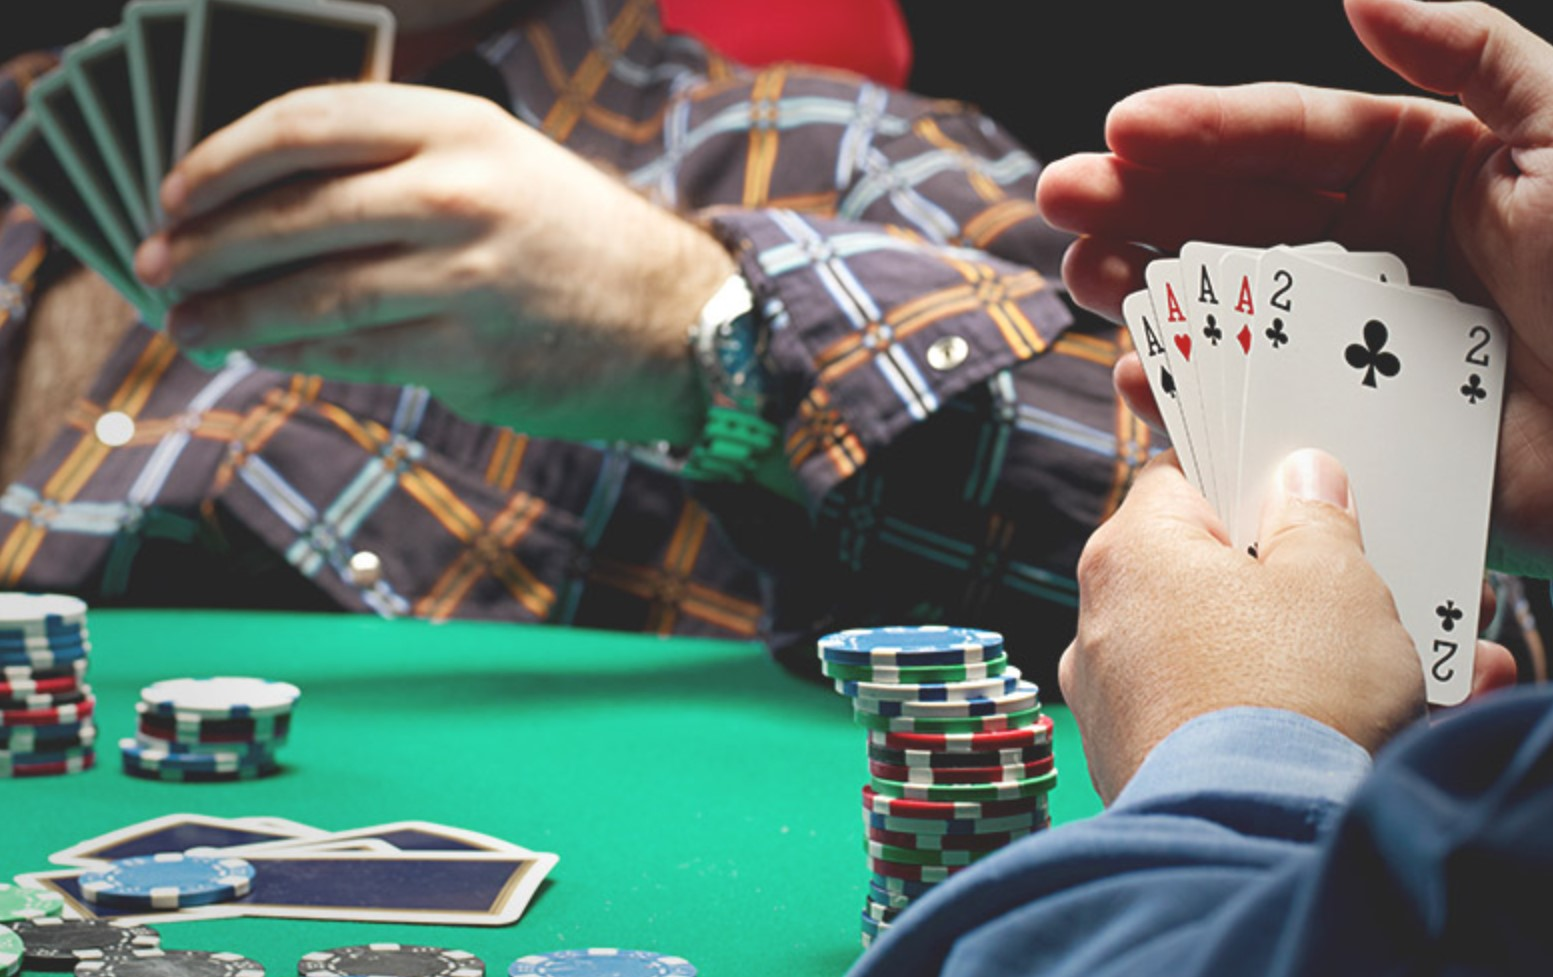 7 Ways to Tell if Someone is Bluffing in Online Poker